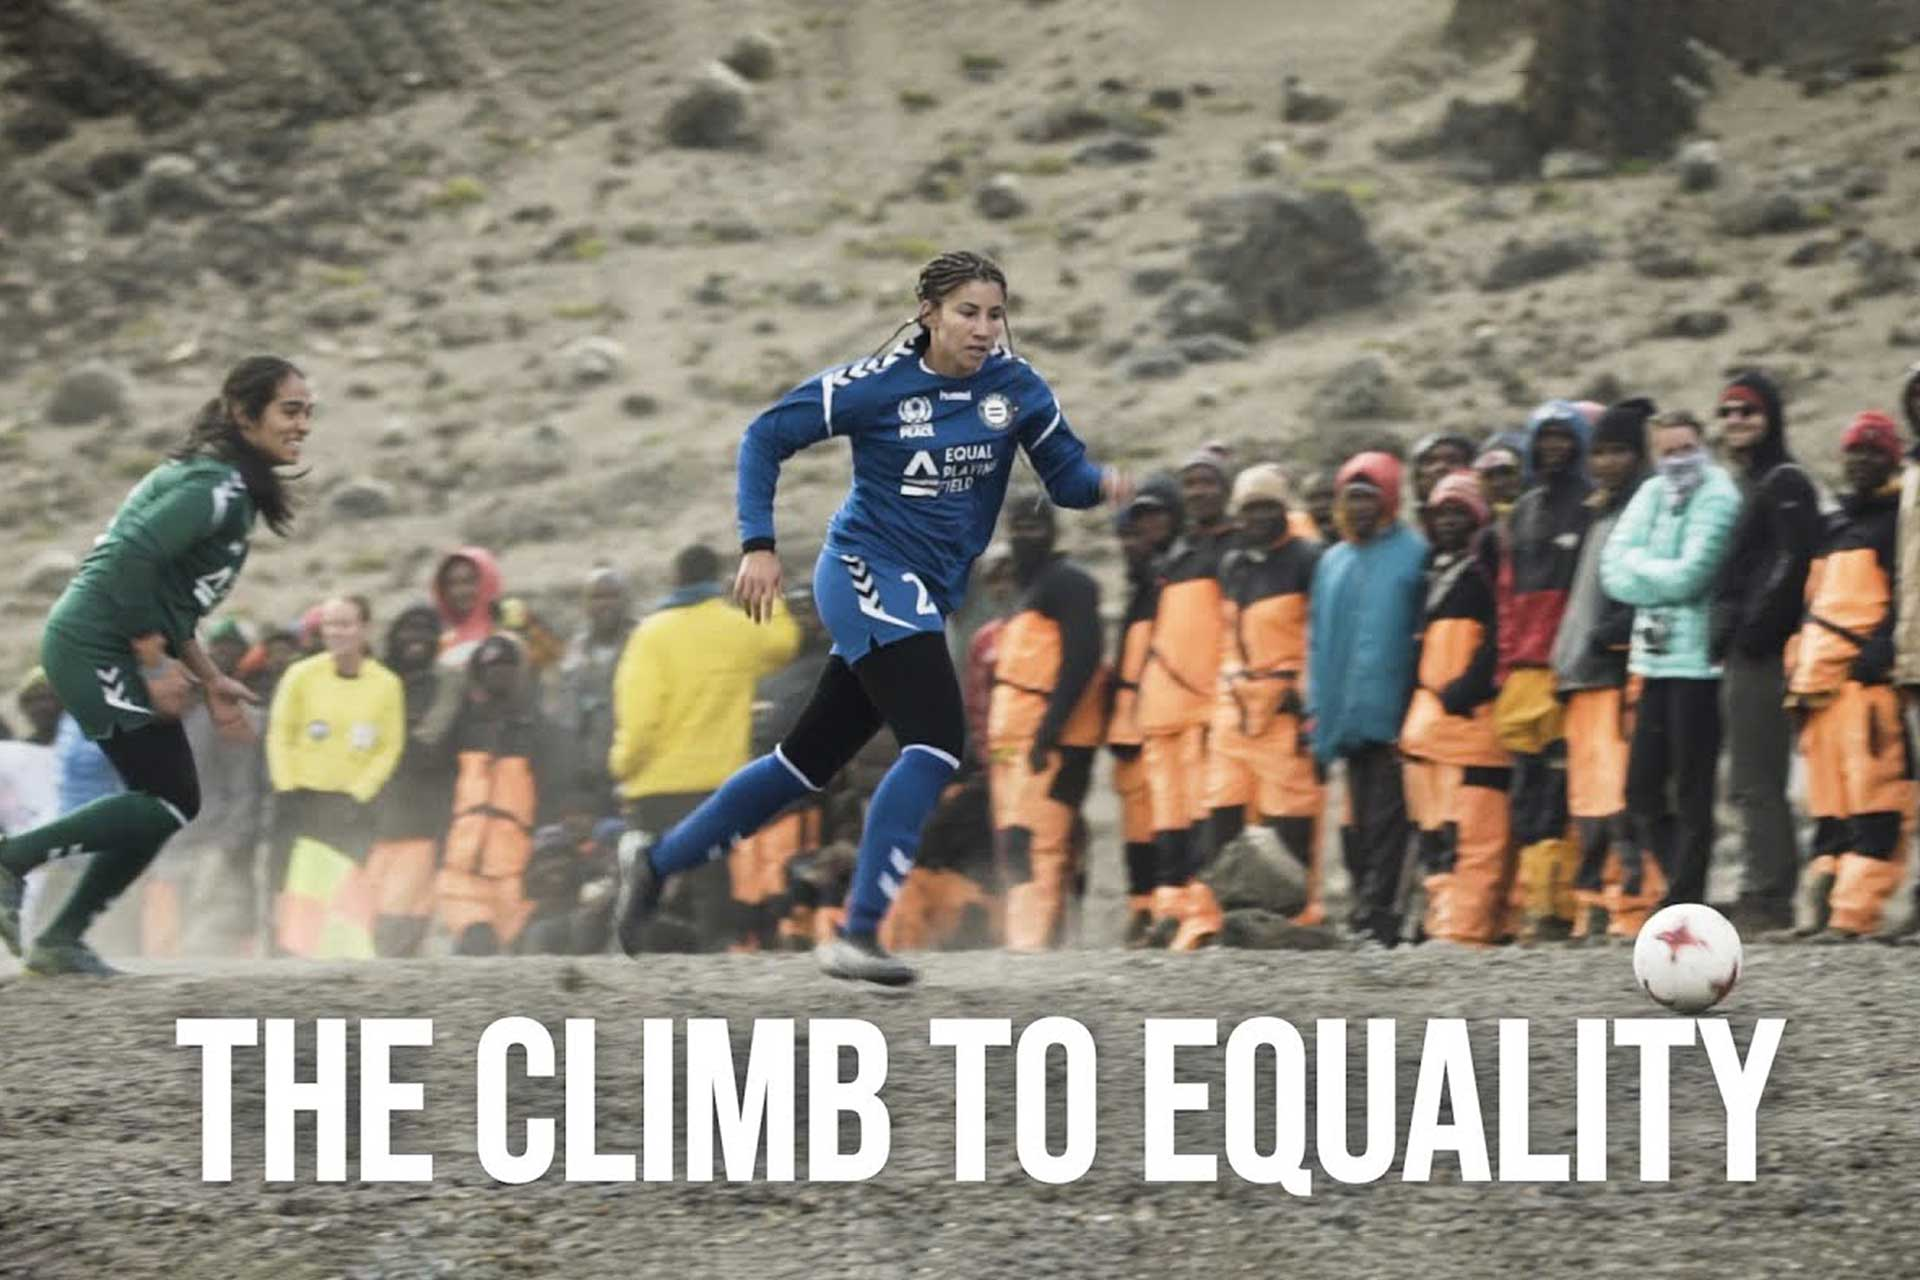 Football Makes History: The Climb to Equality